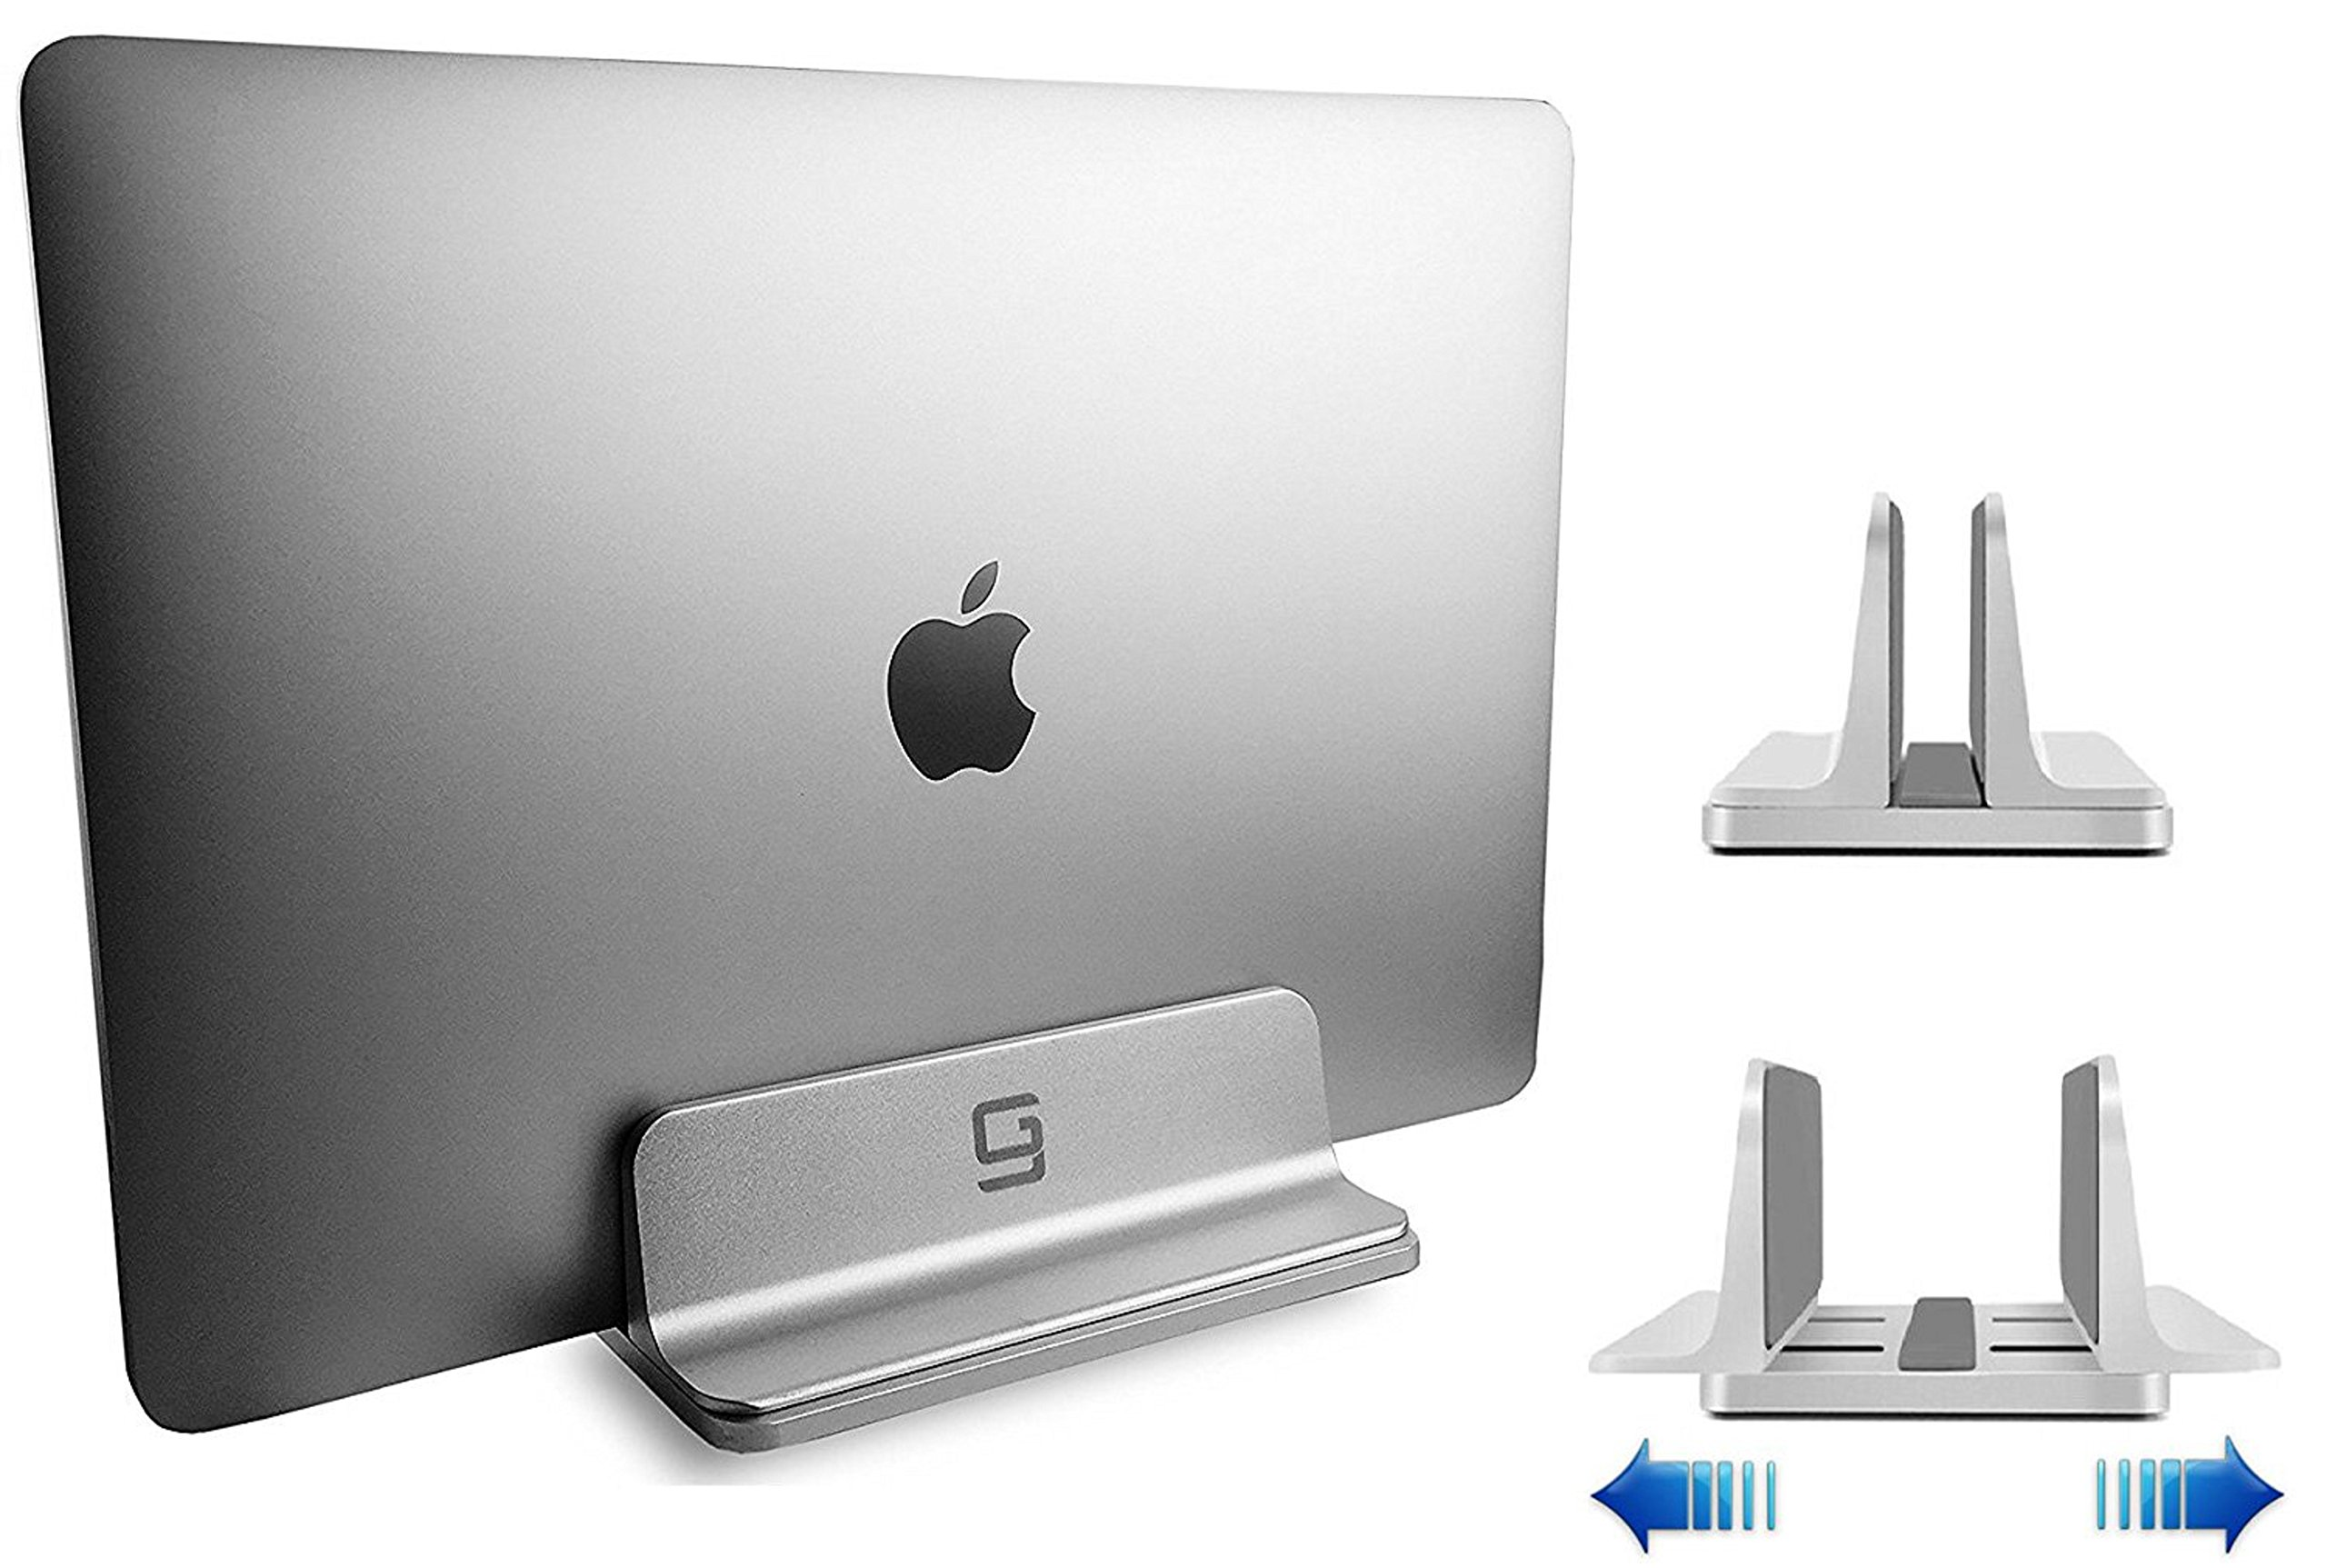 Adjustable Laptop Stand Dock | Fits All Apple MacBook Pro Air HP Dell Acer Lenovo Microsoft Samsung Sony ASUS Laptops | Vertical Modern Aluminum Custom Fit Desktop Space-Saving & Portable (Silver)